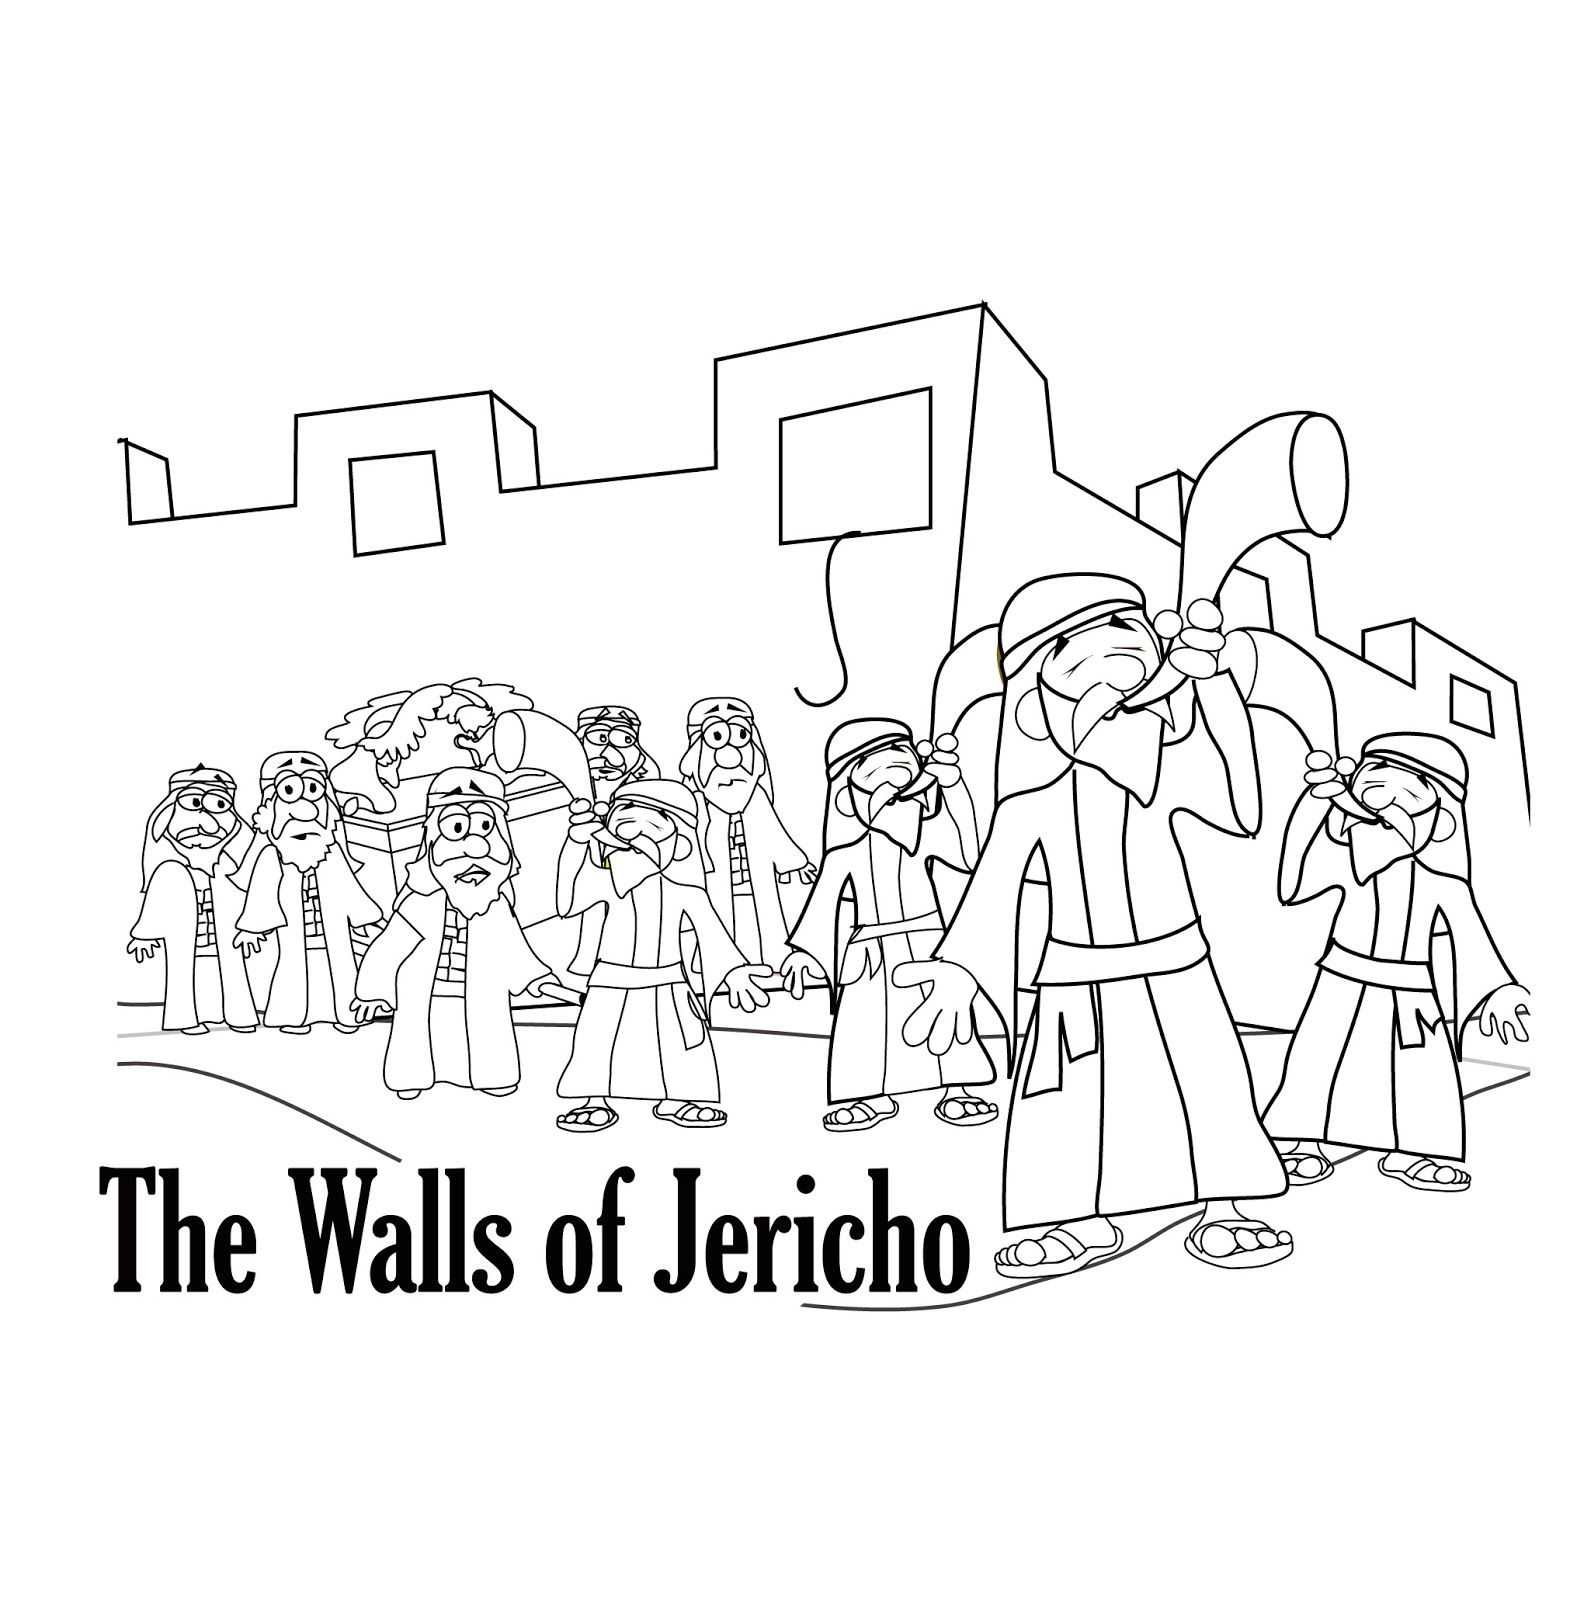 Joshua And Jericho Coloring Pages Free Bible Coloring Pages Sunday School Coloring Pages Bible Coloring